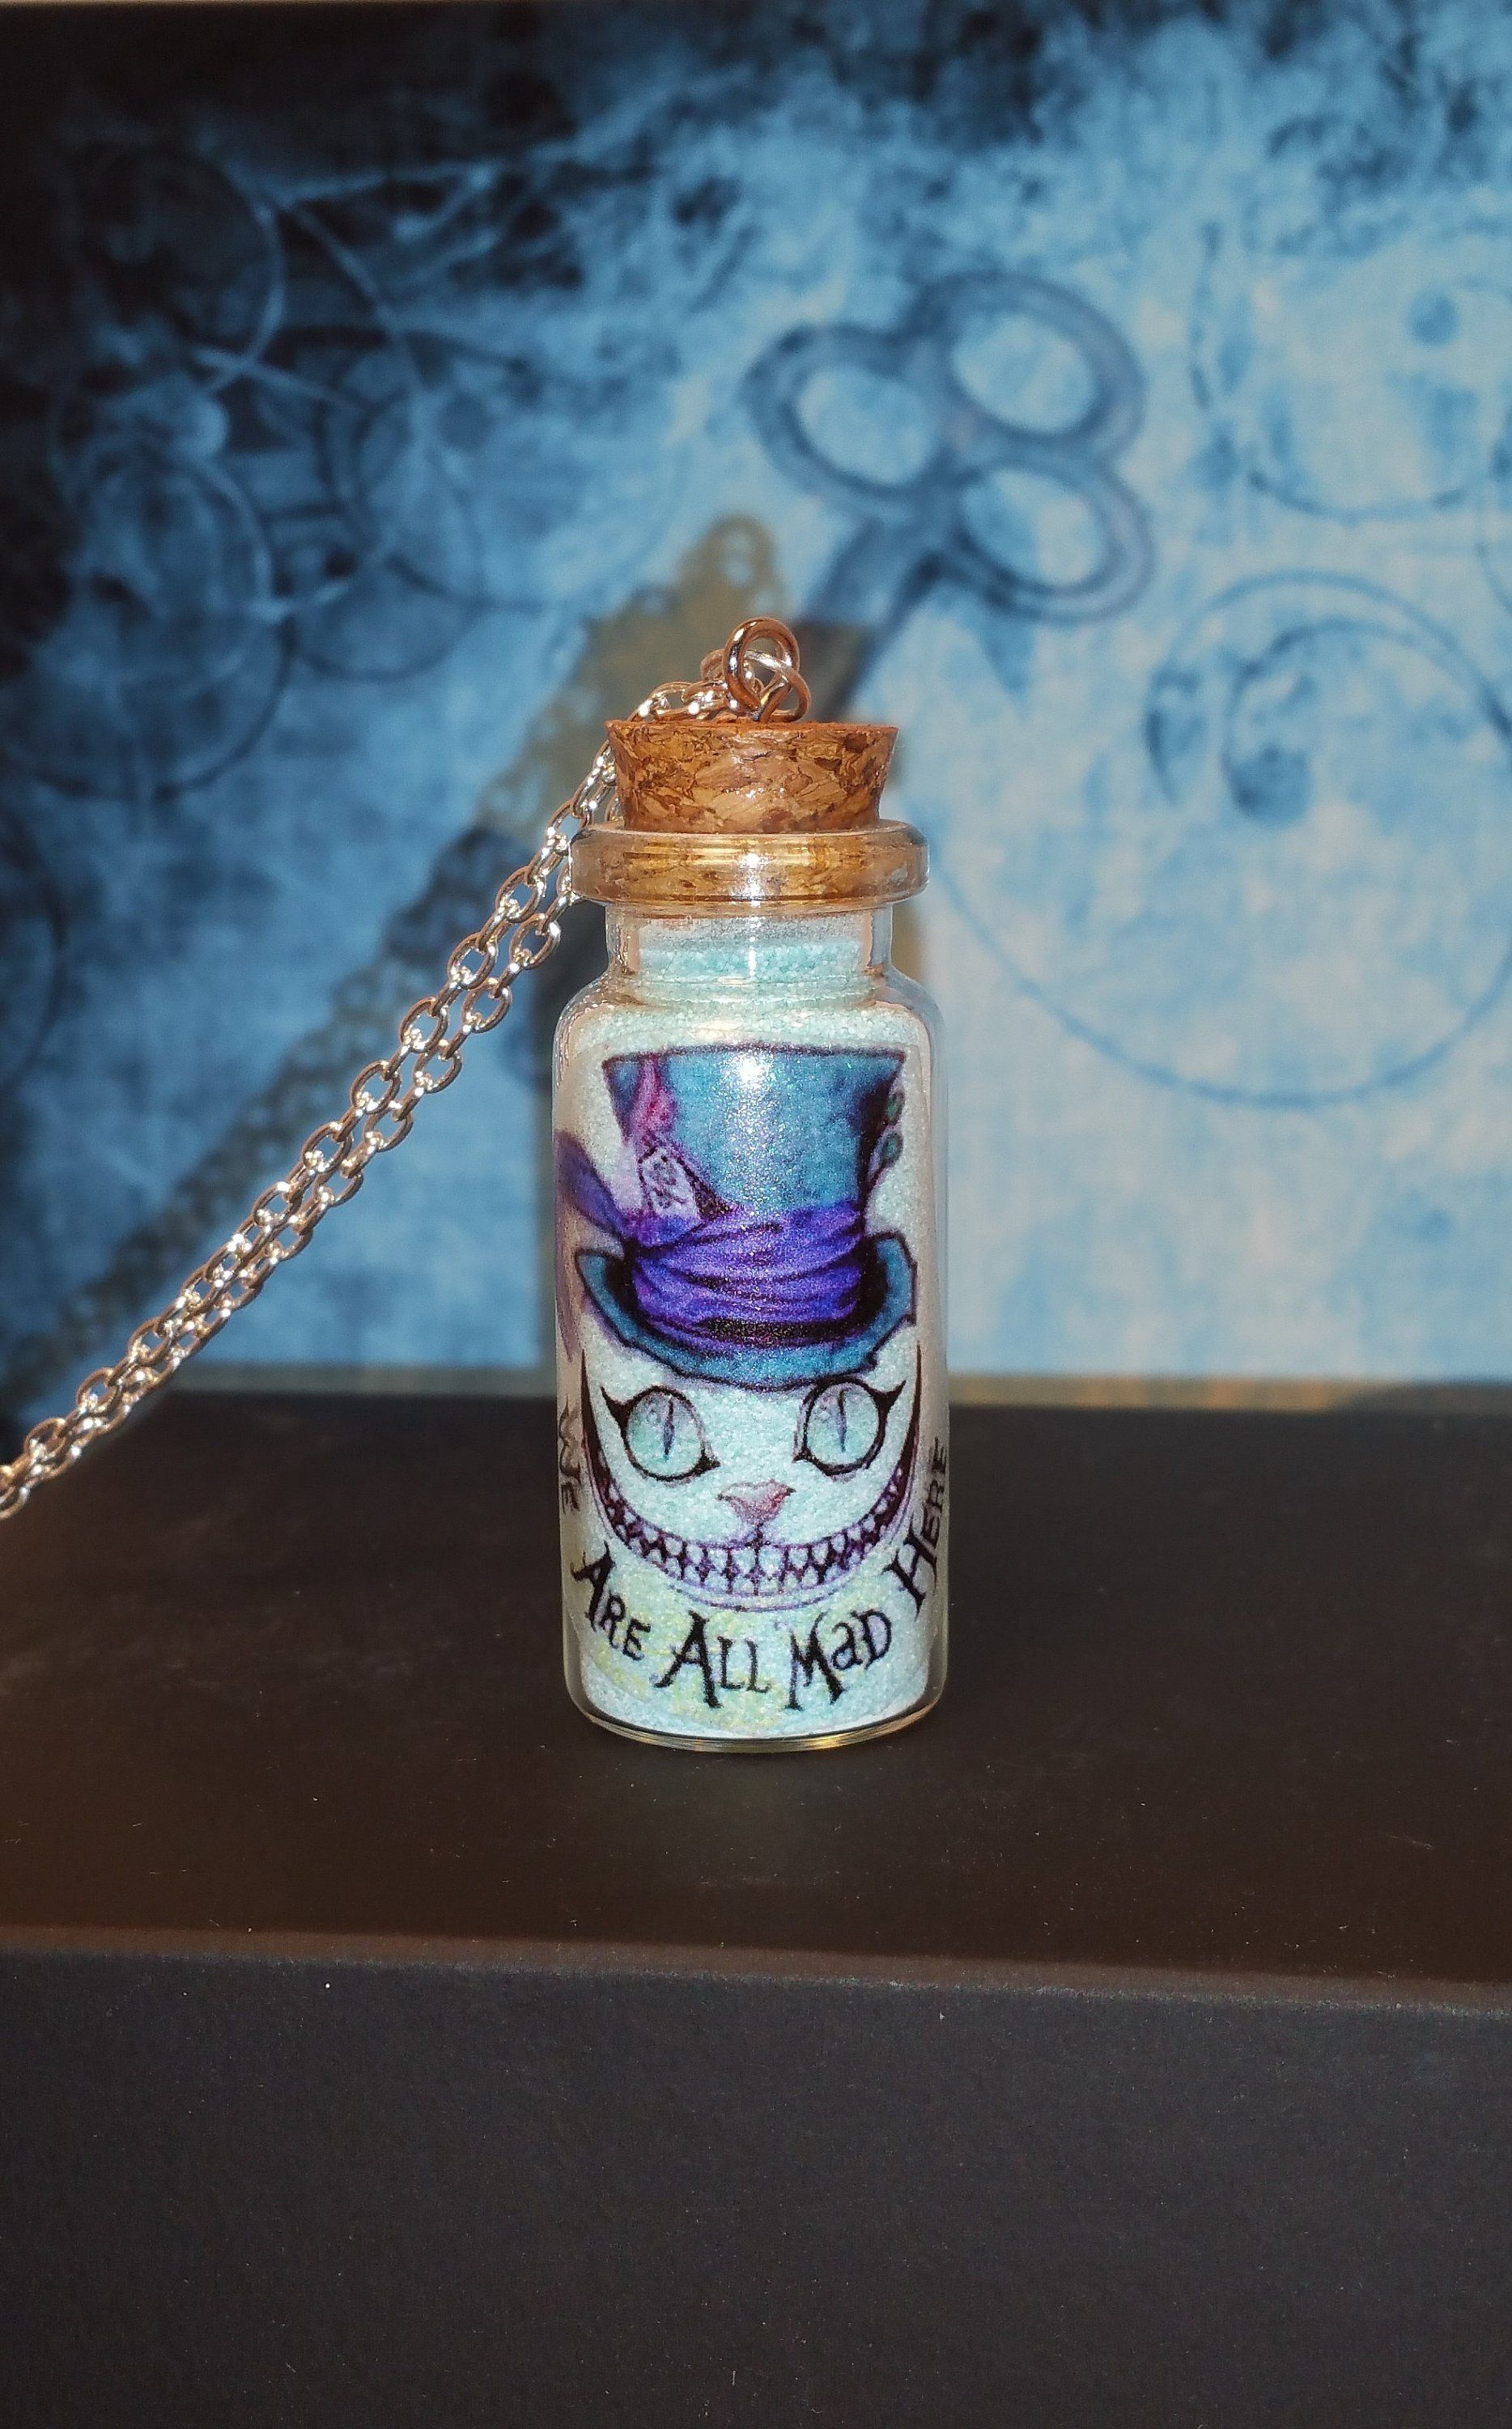 Alice in Wonderland RING Cheshire cat We/'re all mad here mad hatter silver tea